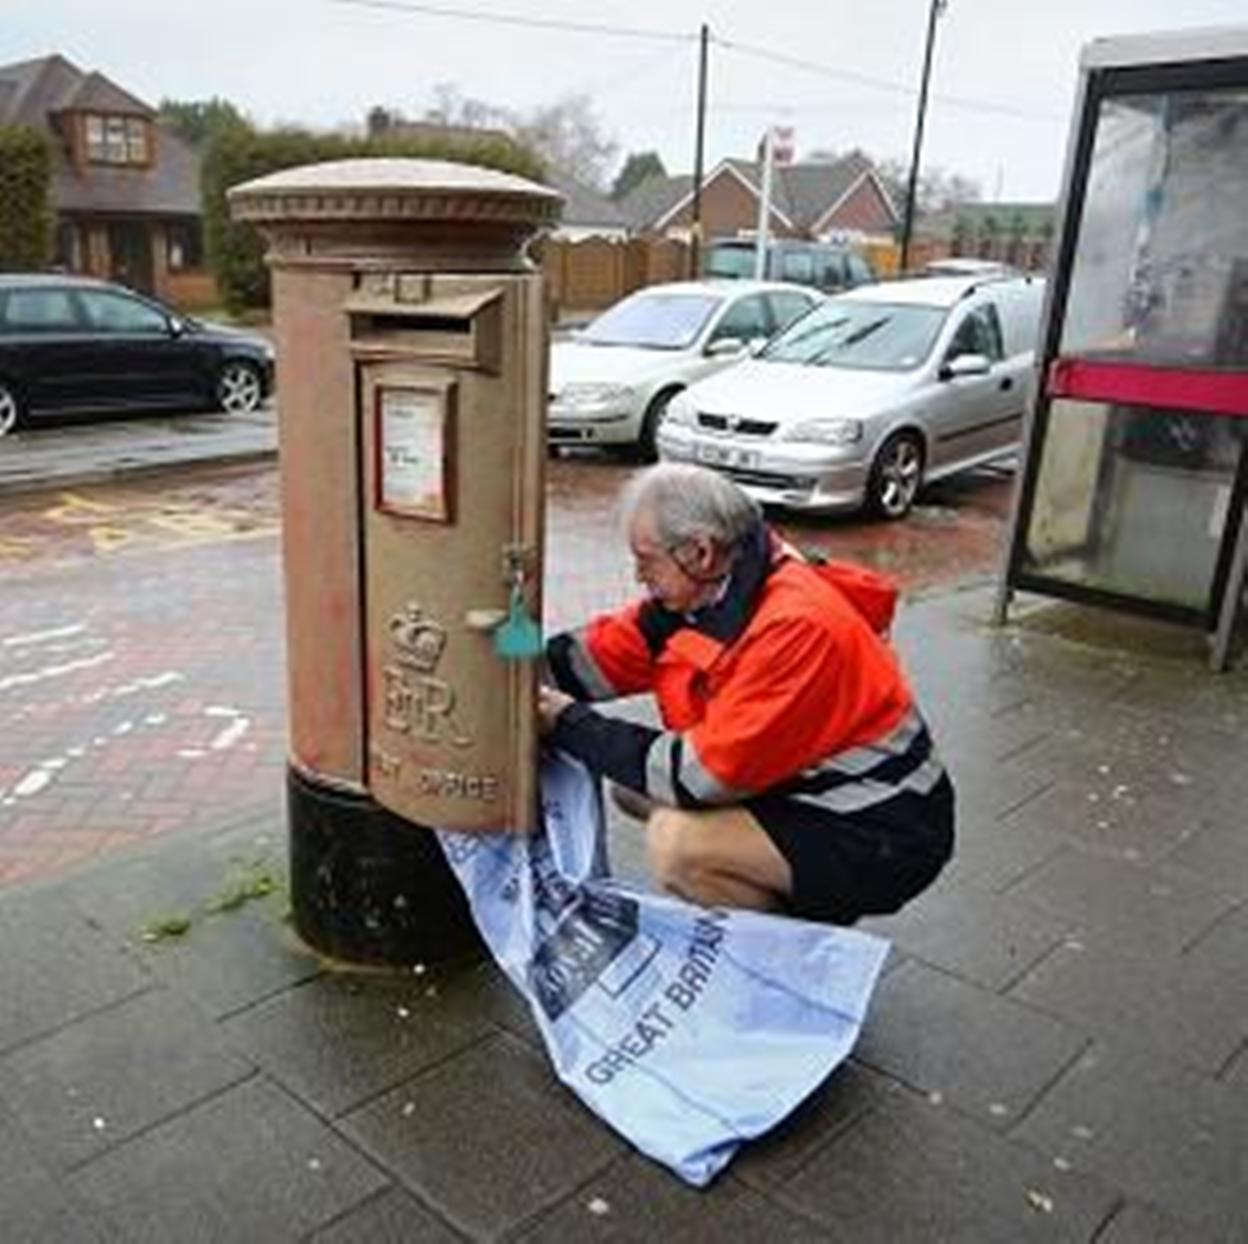 Vandals paint West Kingsdown postbox gold in honour of Lizzy Yarnold